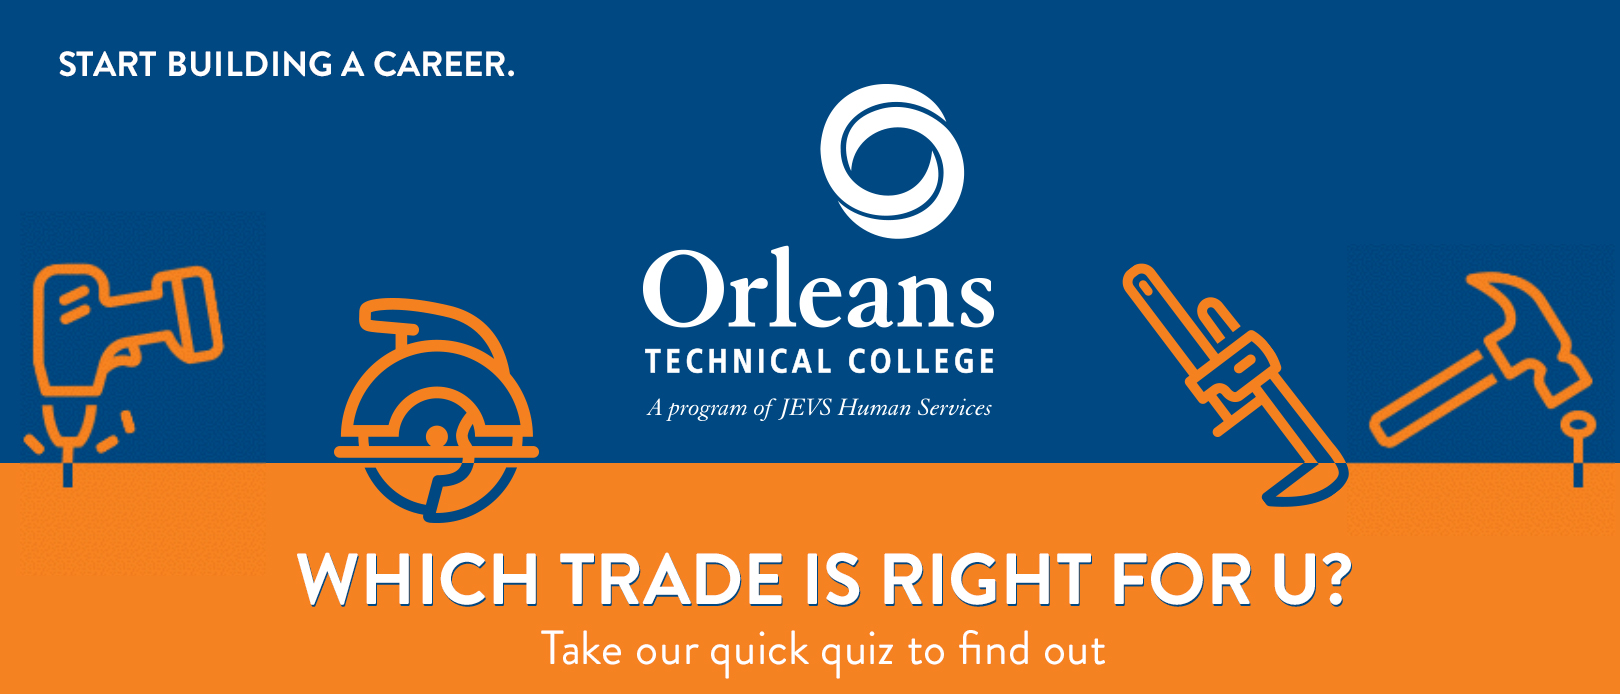 which trade is right for u orleans technical college are you interested in a building trades career but aren t sure which path to take picking the right one is the key to finding a career that is both